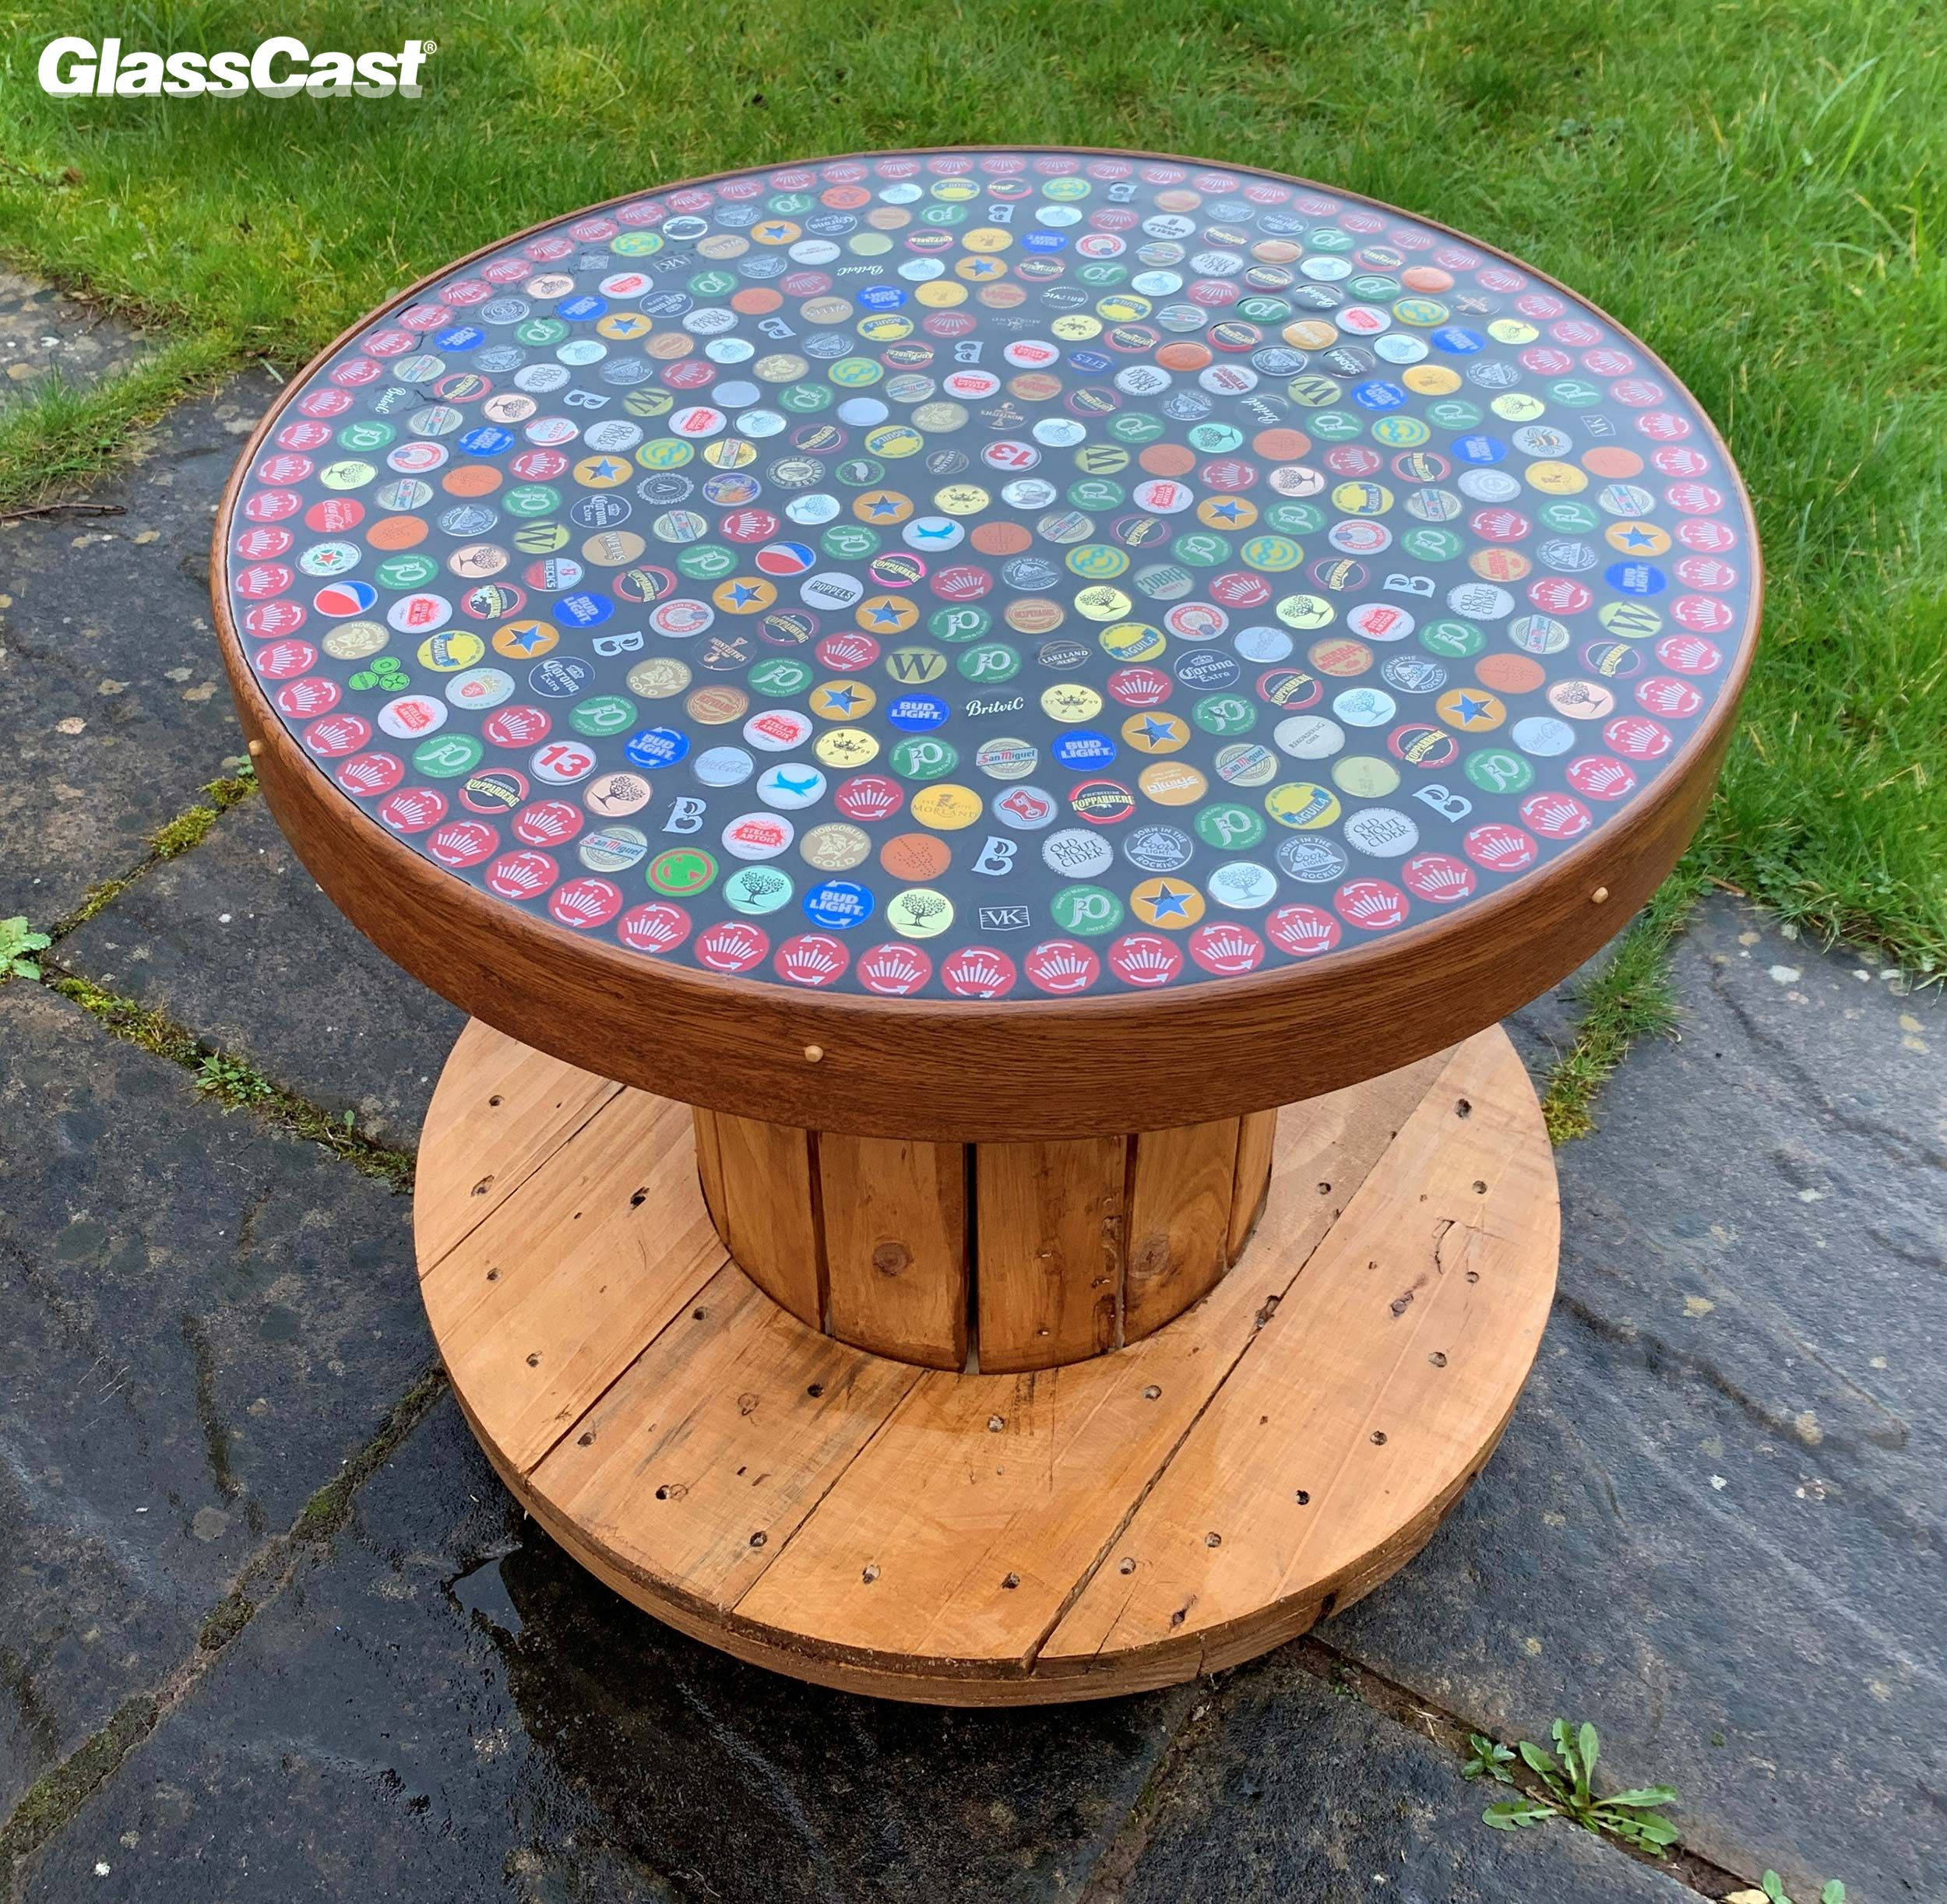 Bottle Cap Resin Coated Cable Reel Table Glasscast Resin